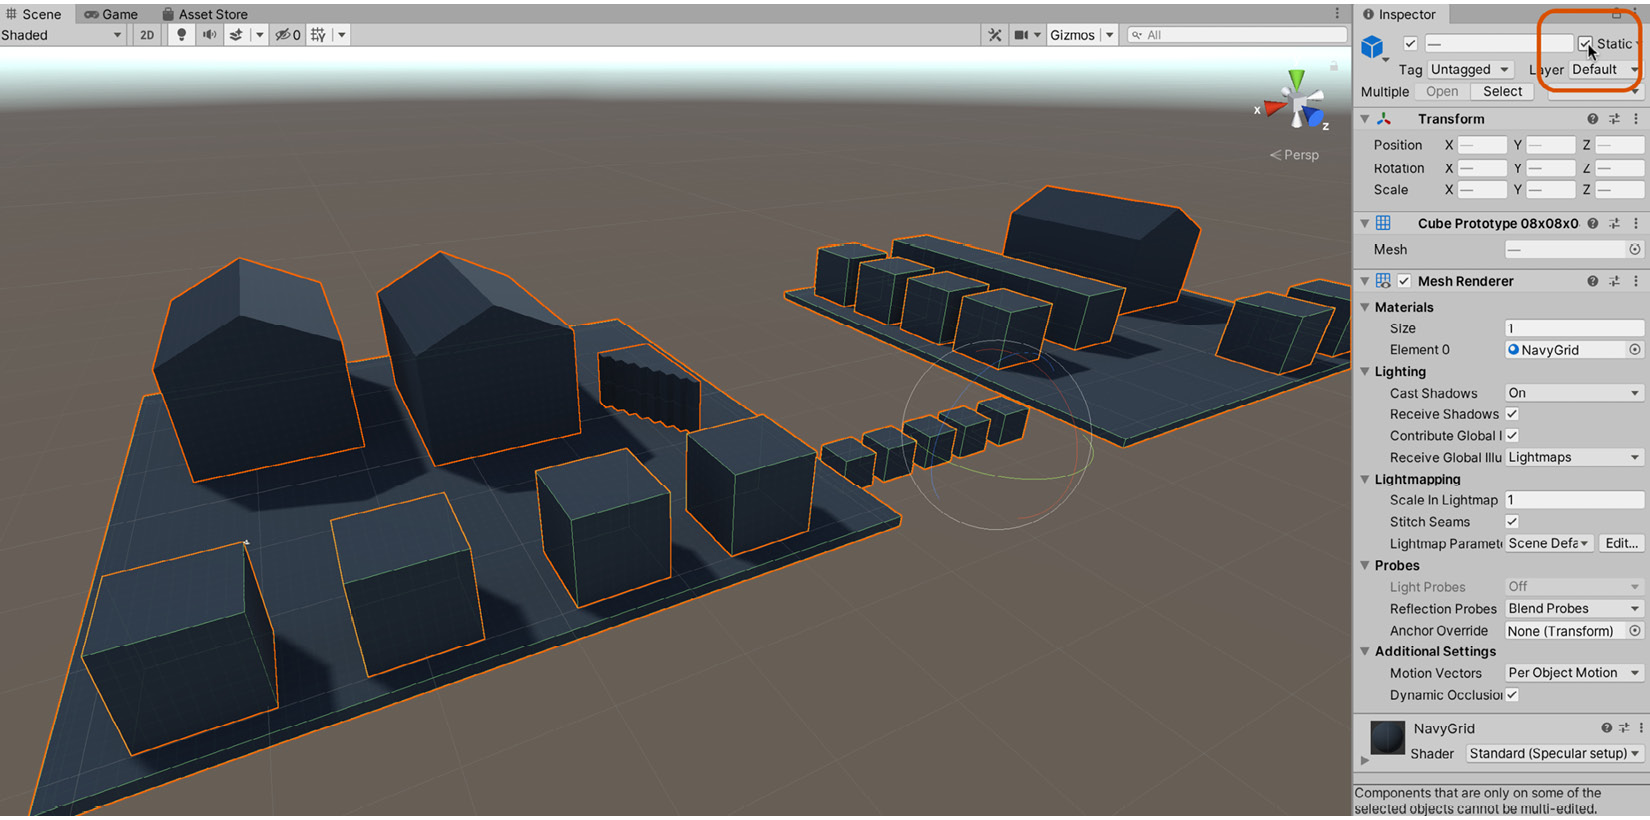 Figure 1.32 – Enabling the Static option for multiple non-movable objects  improves lighting and performance